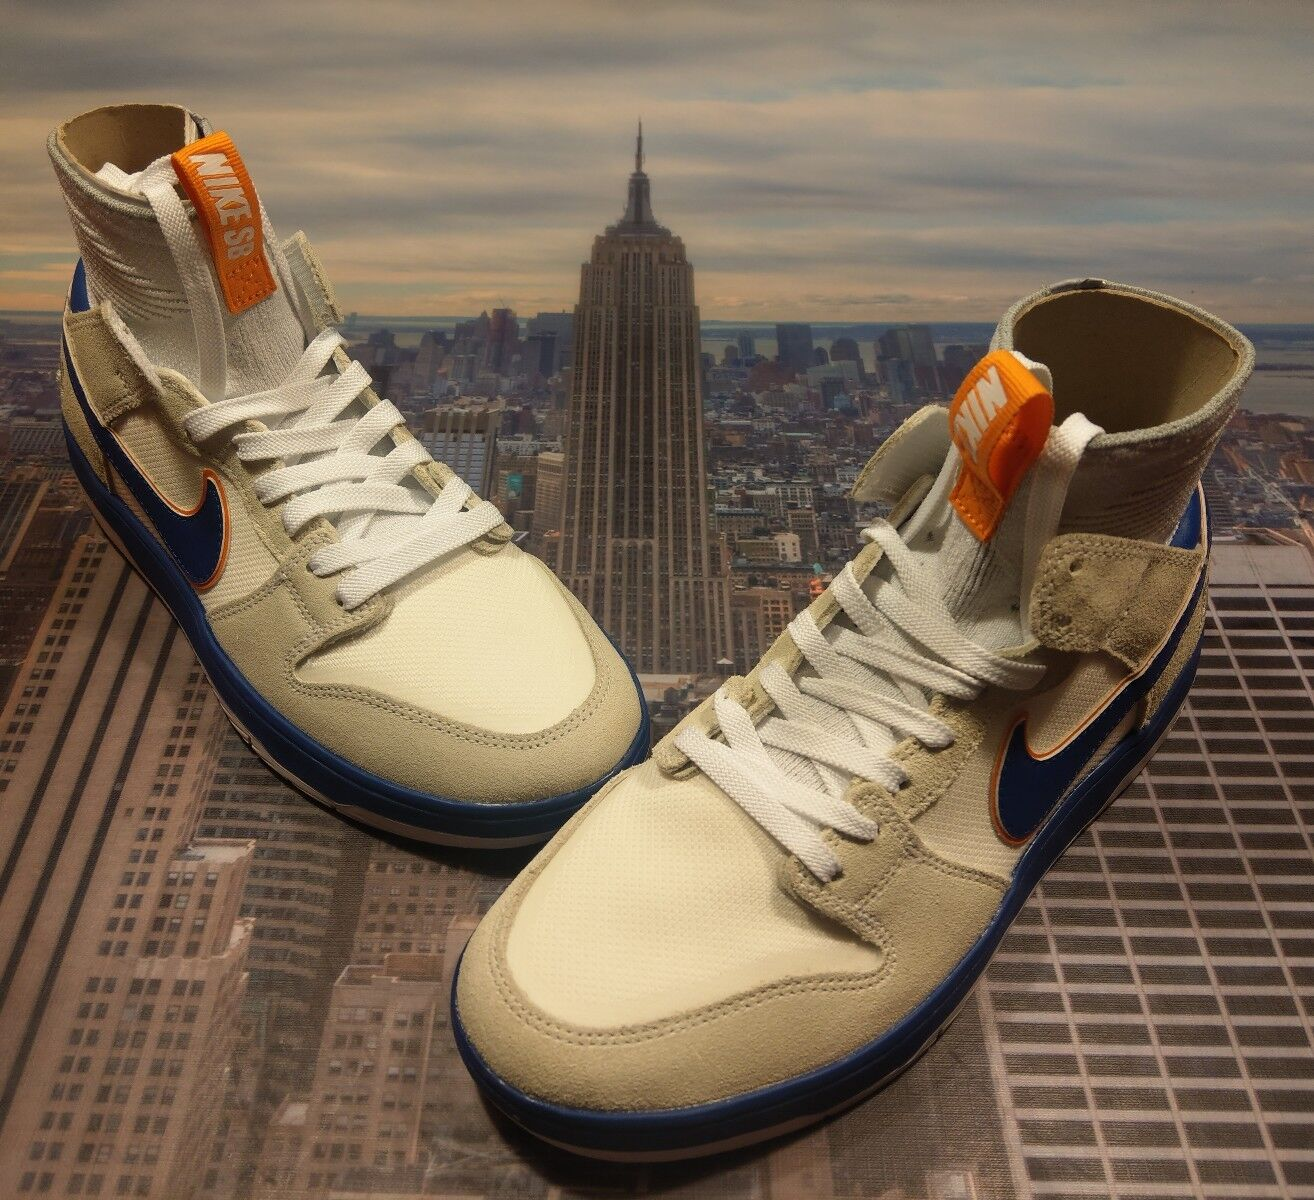 Nike SB Zoom Dunk High Elite QS Medicom Bearbrick Mens Comfortable The latest discount shoes for men and women